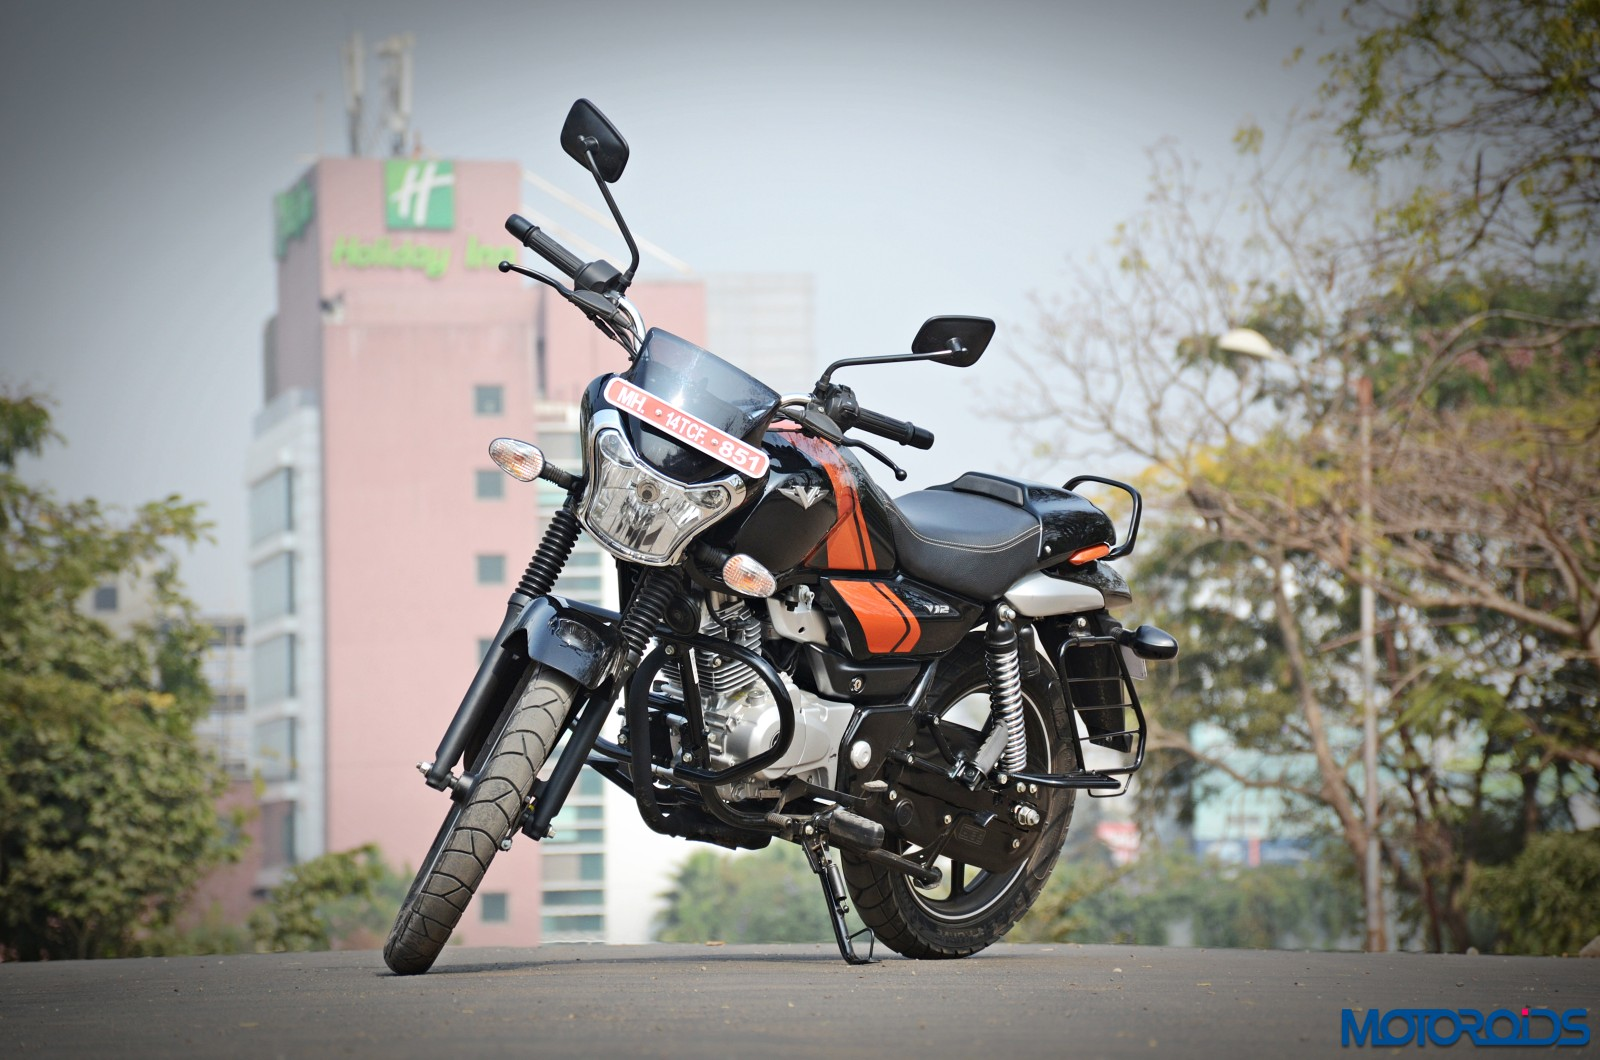 Bajaj-V12-Review-Still-Shots-7